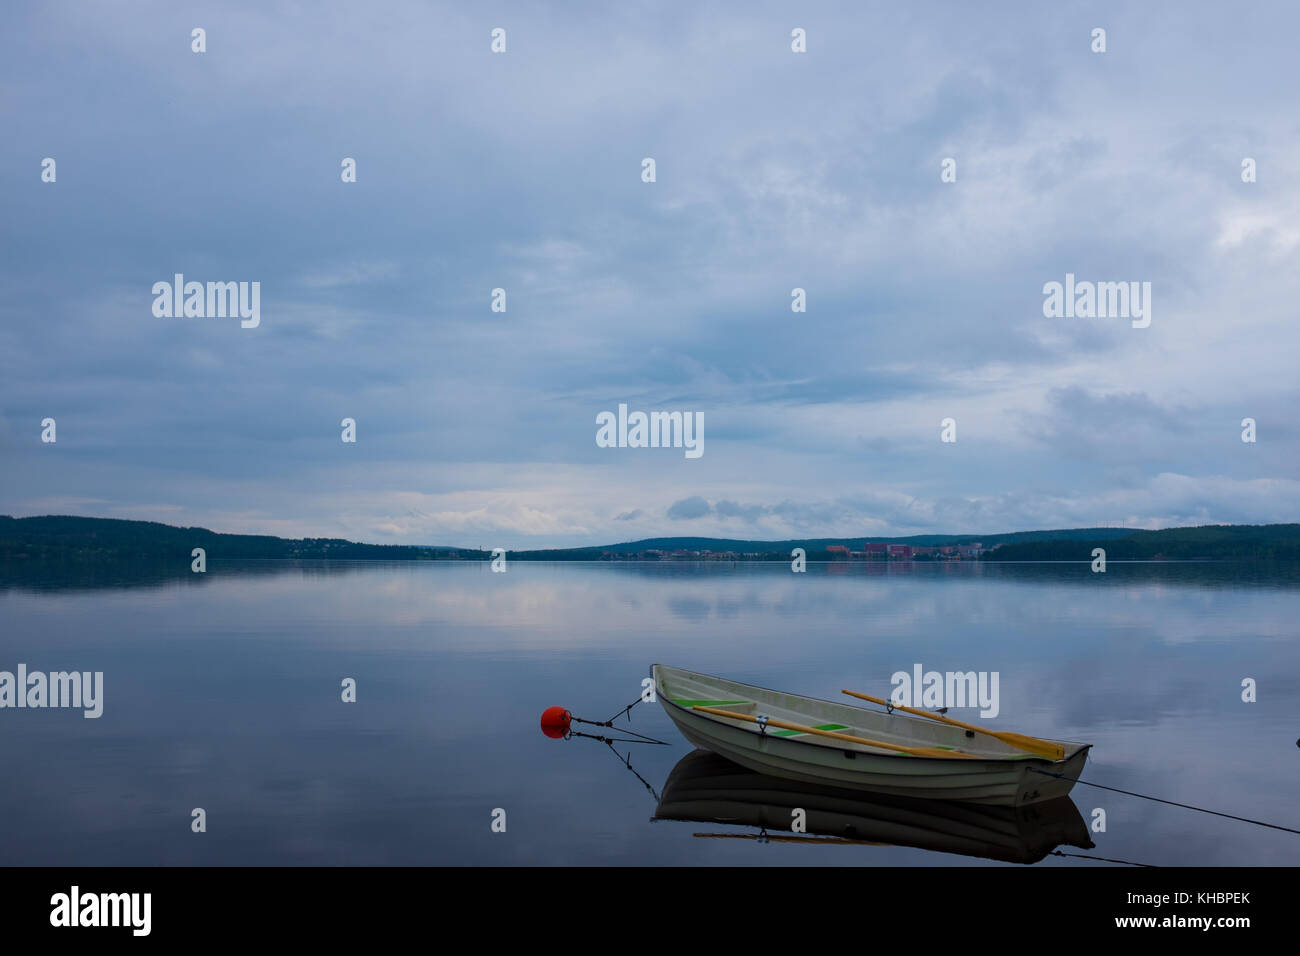 A moored rowboat by a calm lake in northern Sweden - Stock Image